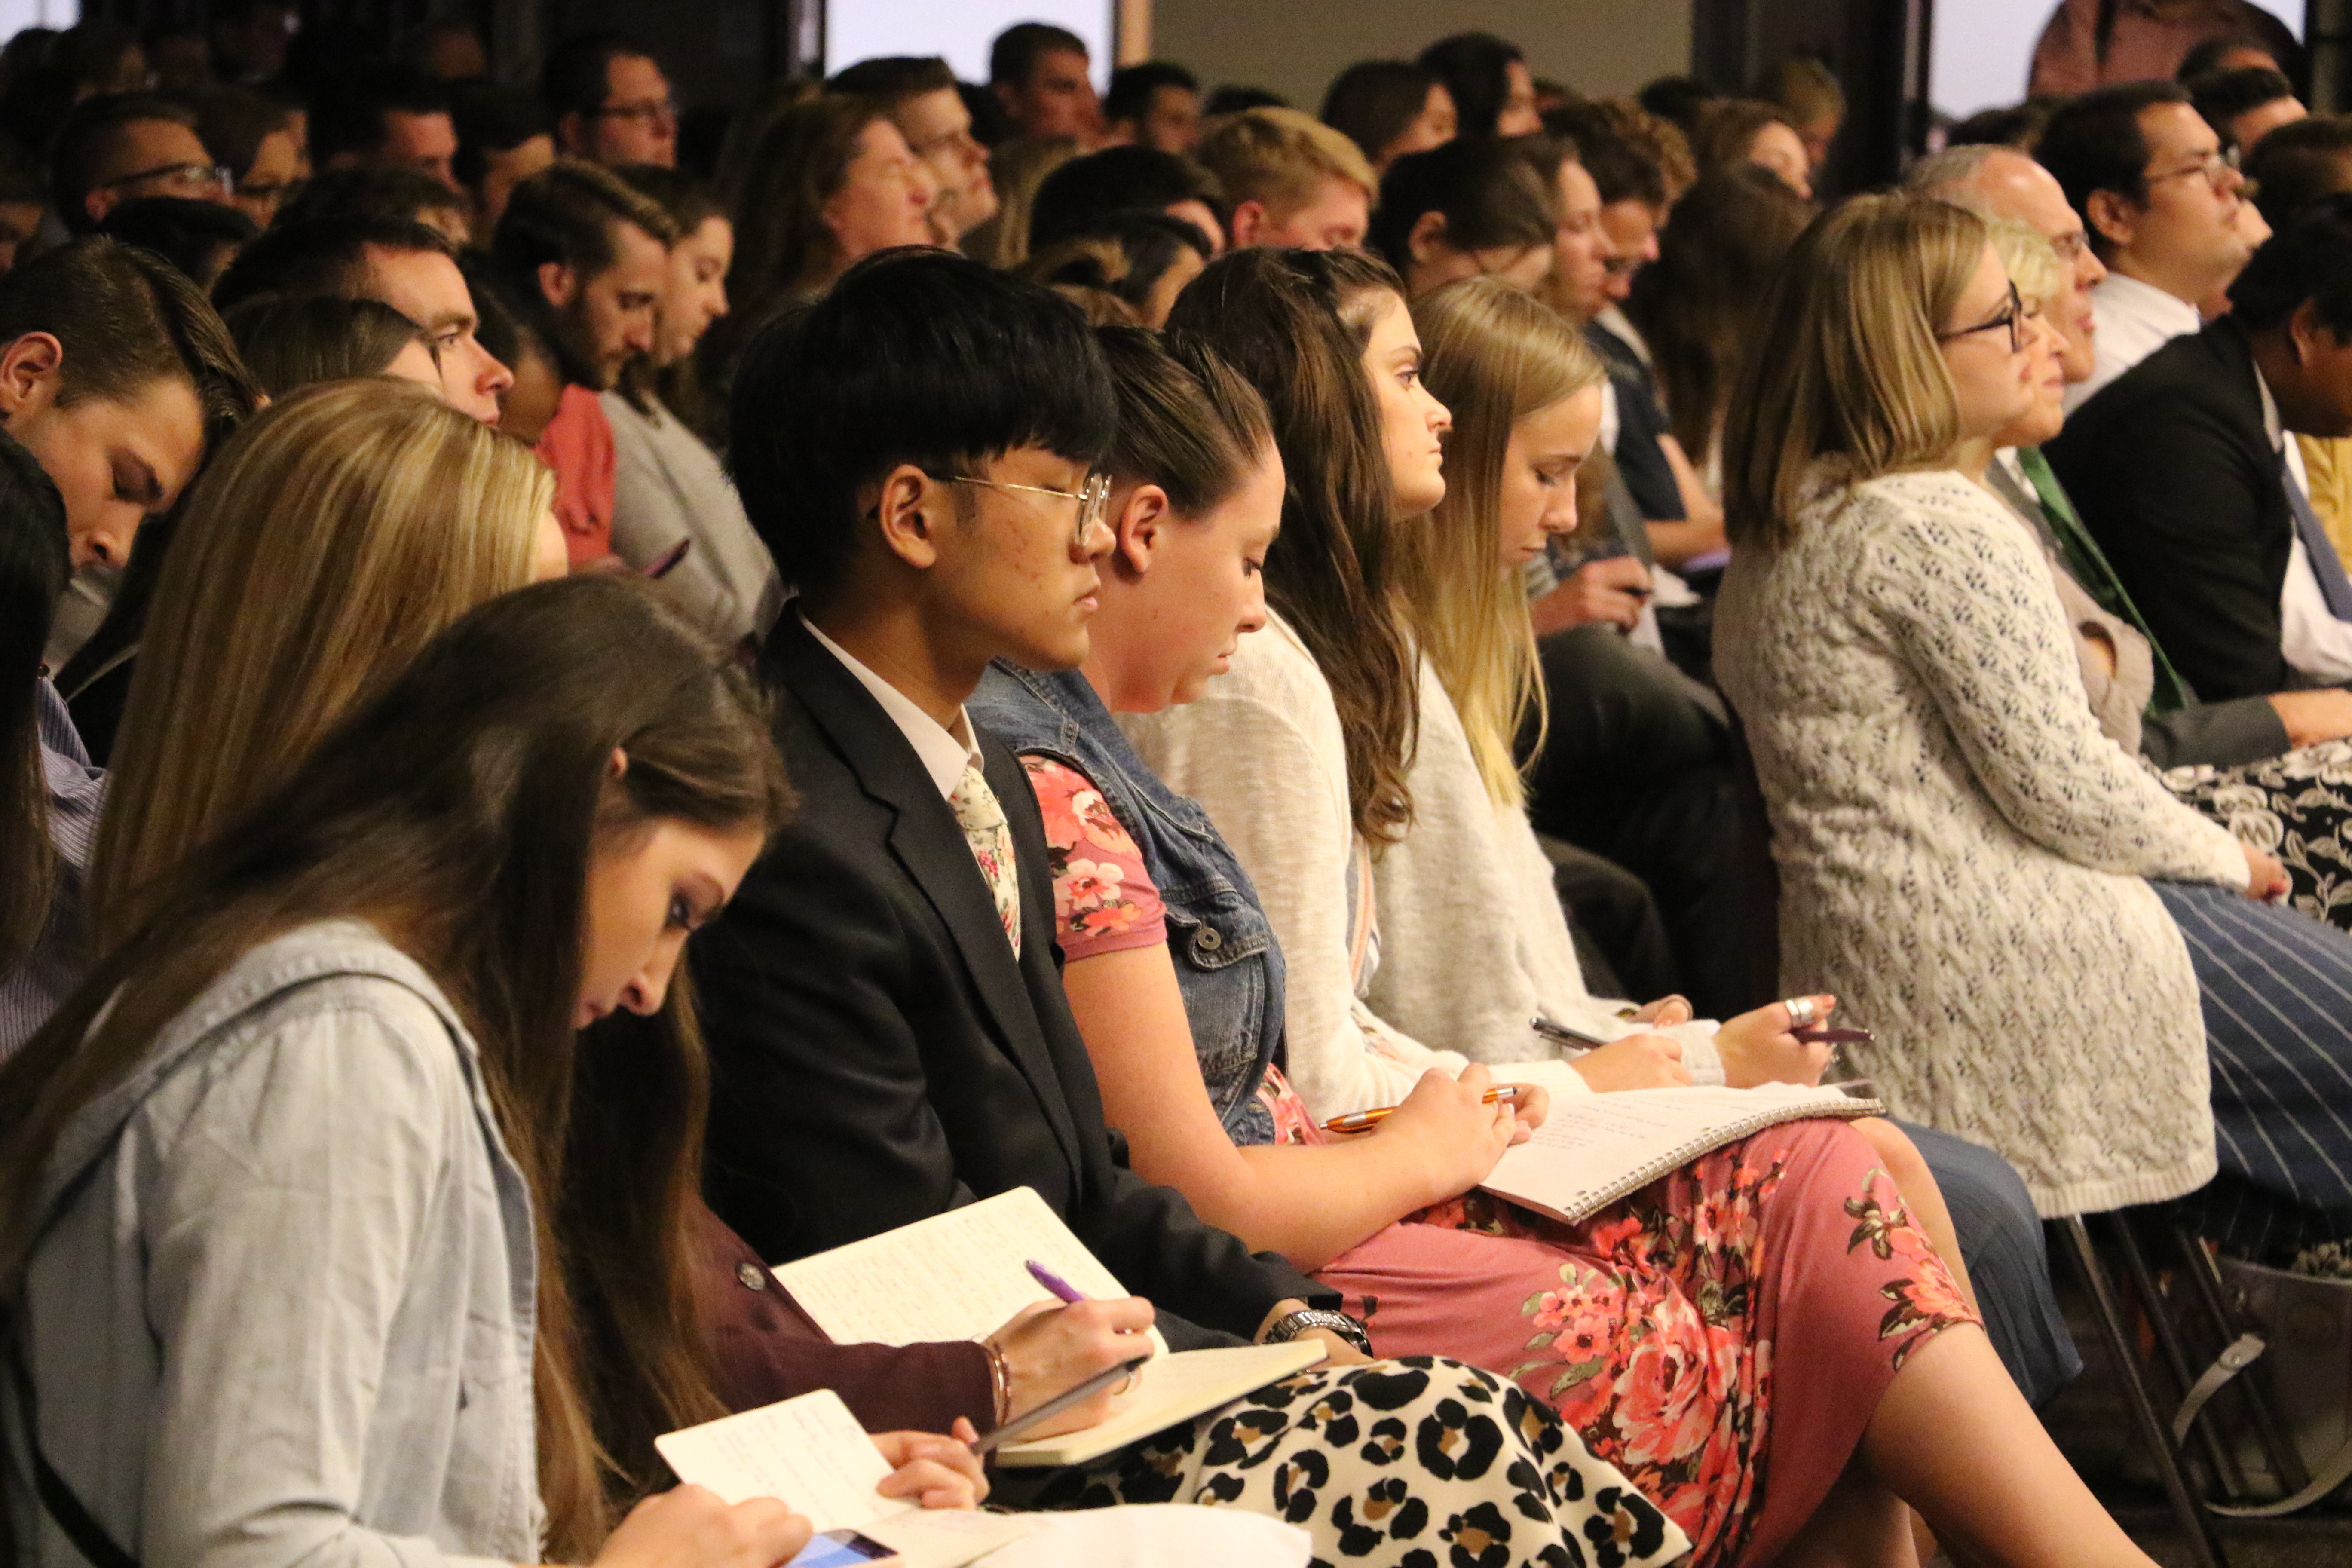 Students in the audience take notes and listen at a devotional with President M. Russell Ballard on the UVU campus in Orem, Utah on Friday, Sept. 20, 2019.